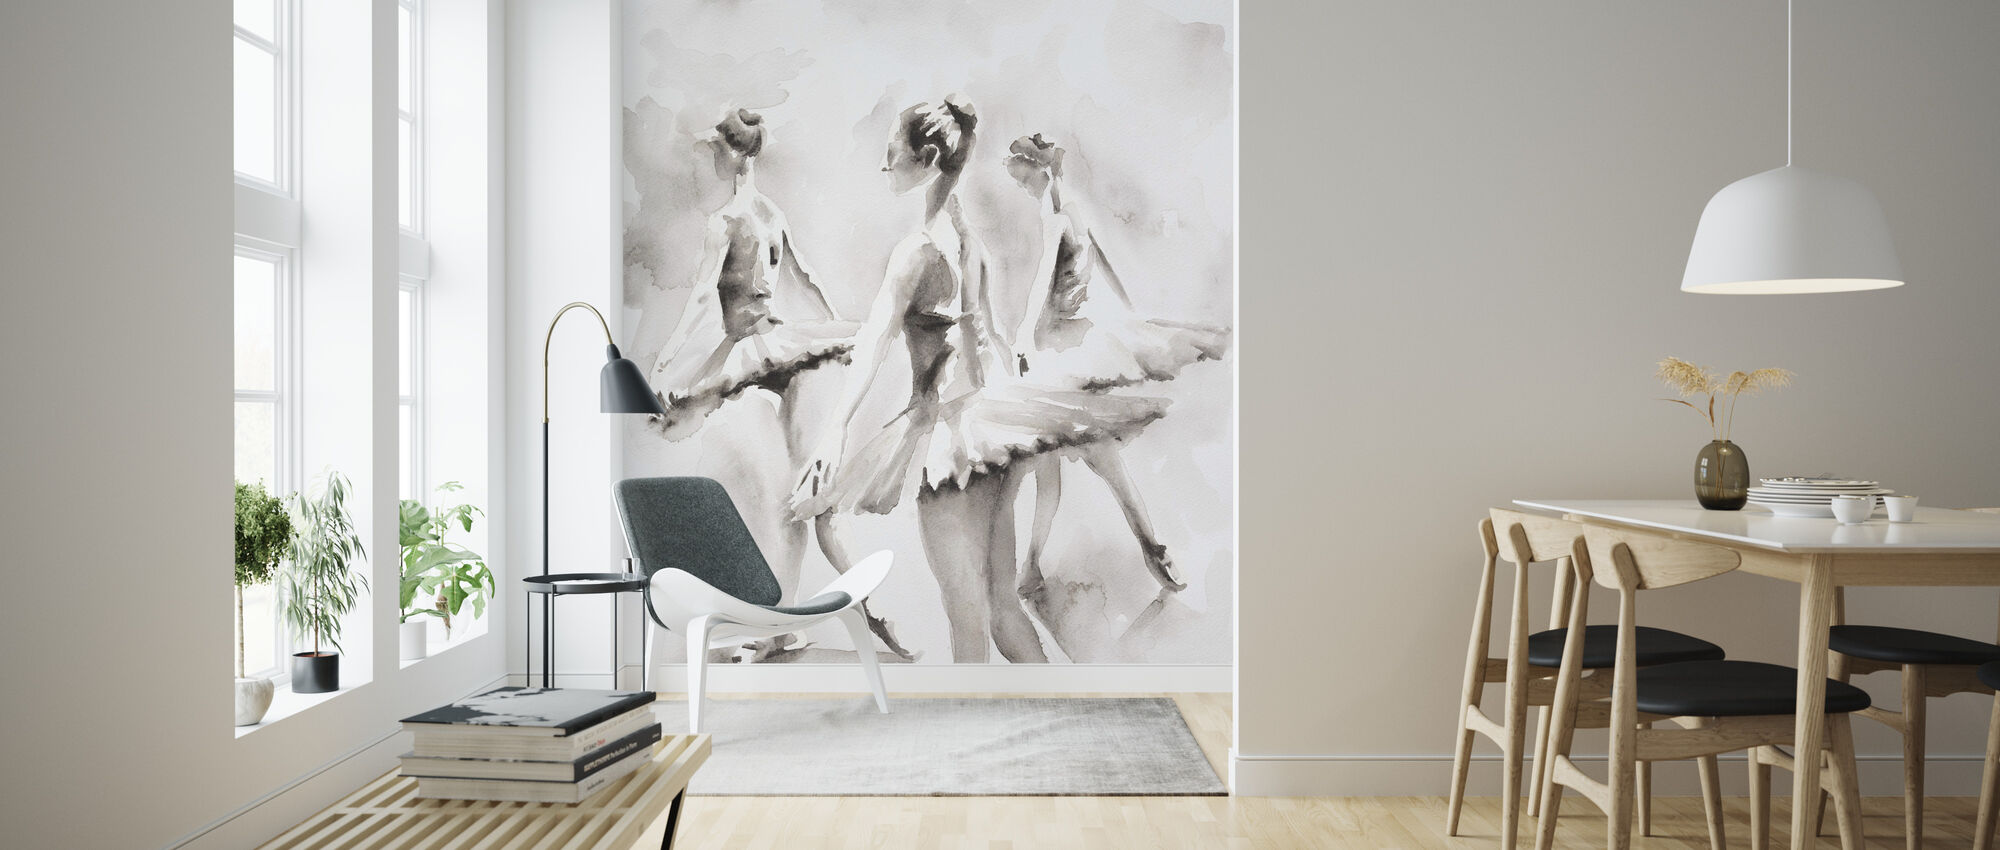 Three Ballerinas - Wallpaper - Living Room